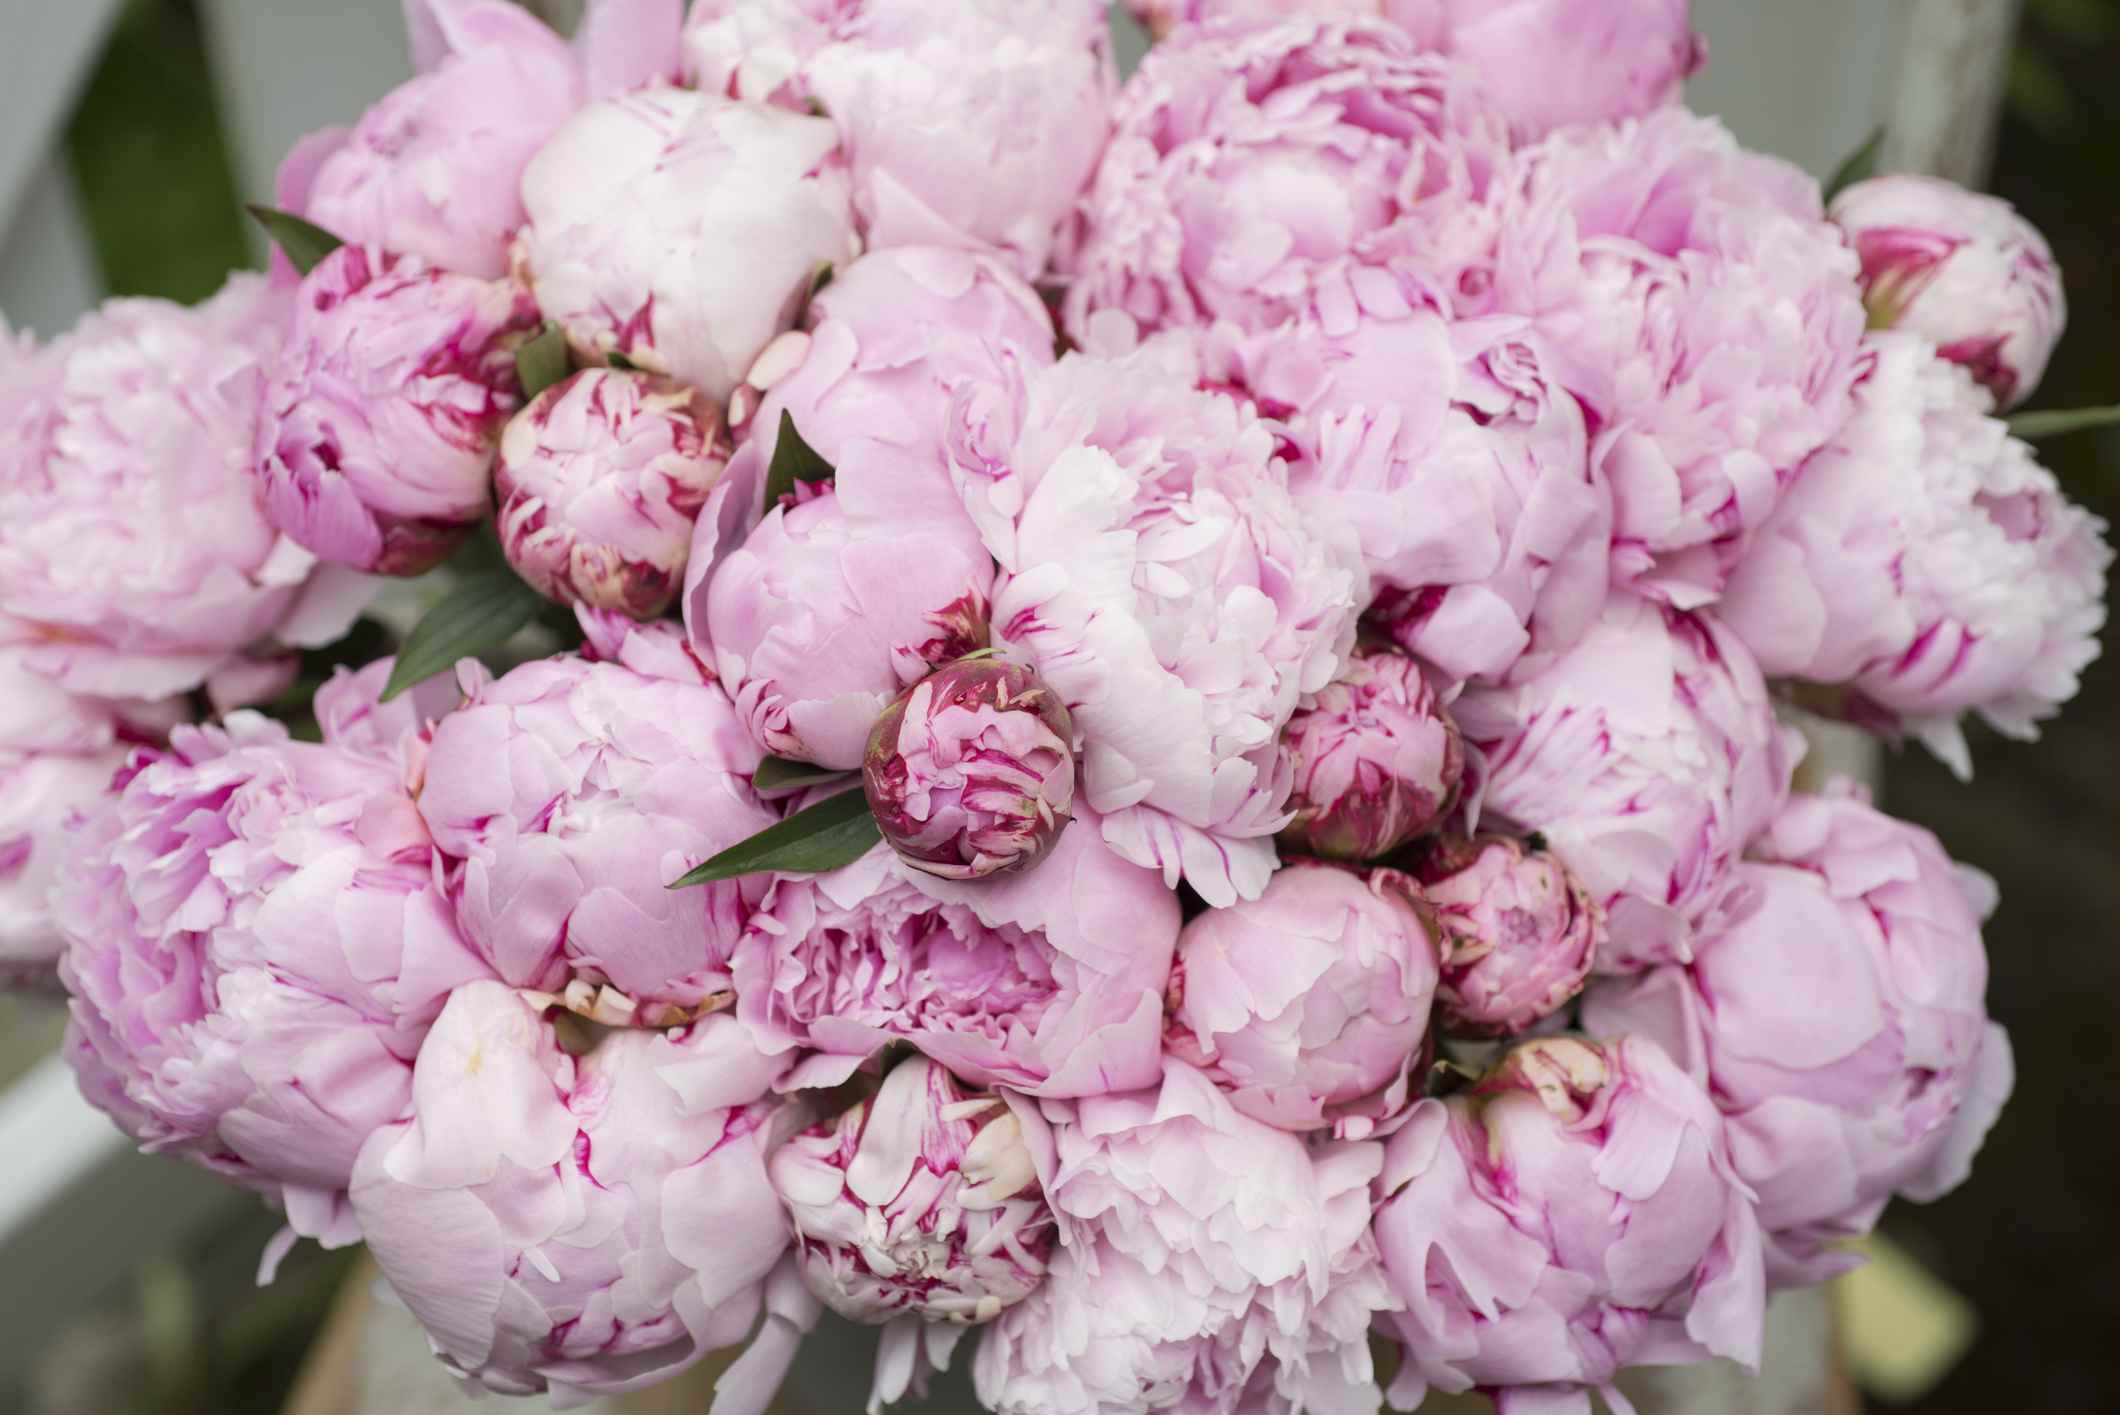 The 12 Best Spring Wedding Flowers in Season